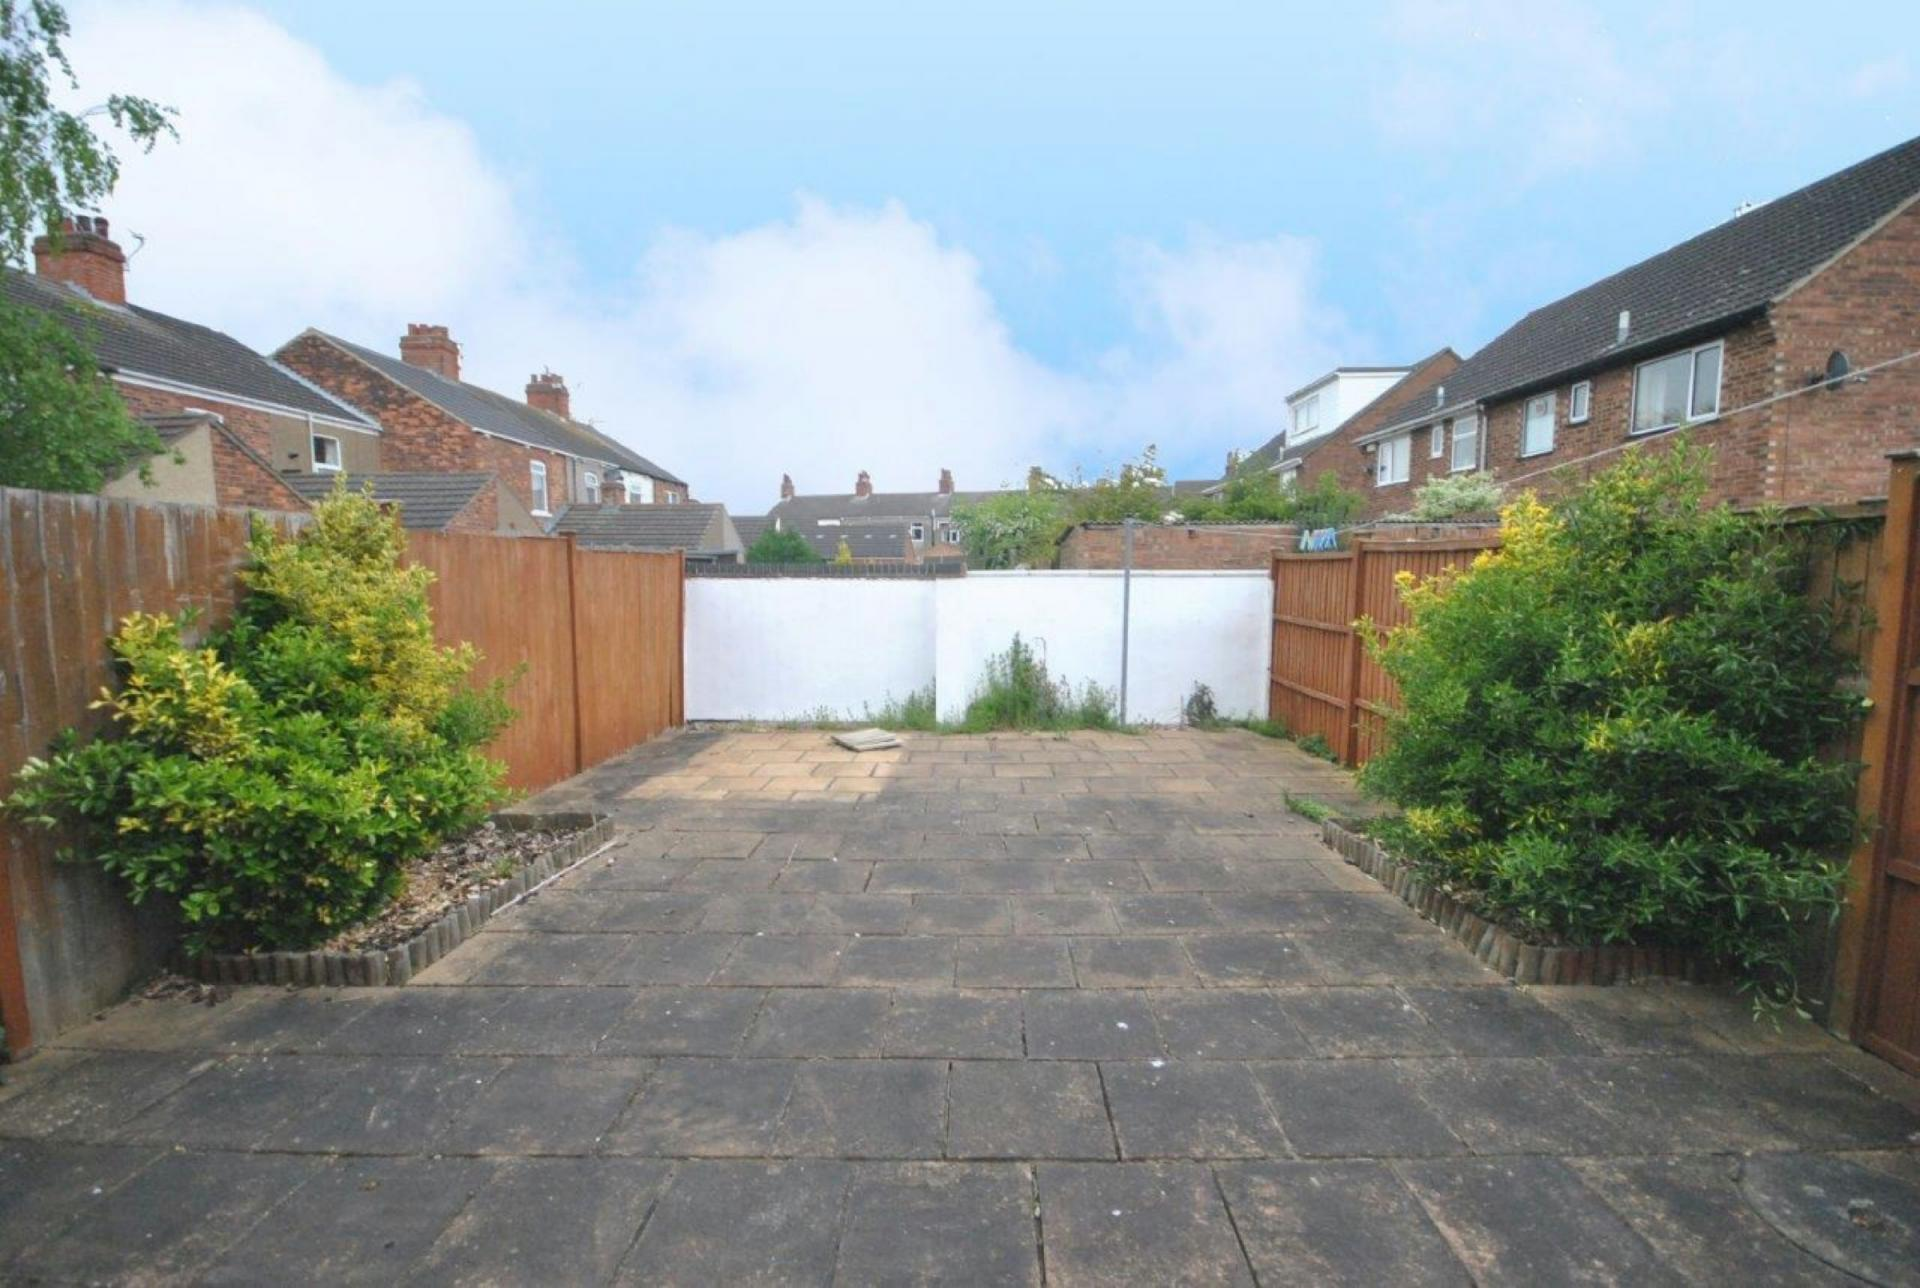 Commercial Property For Sale Grimsby Uk